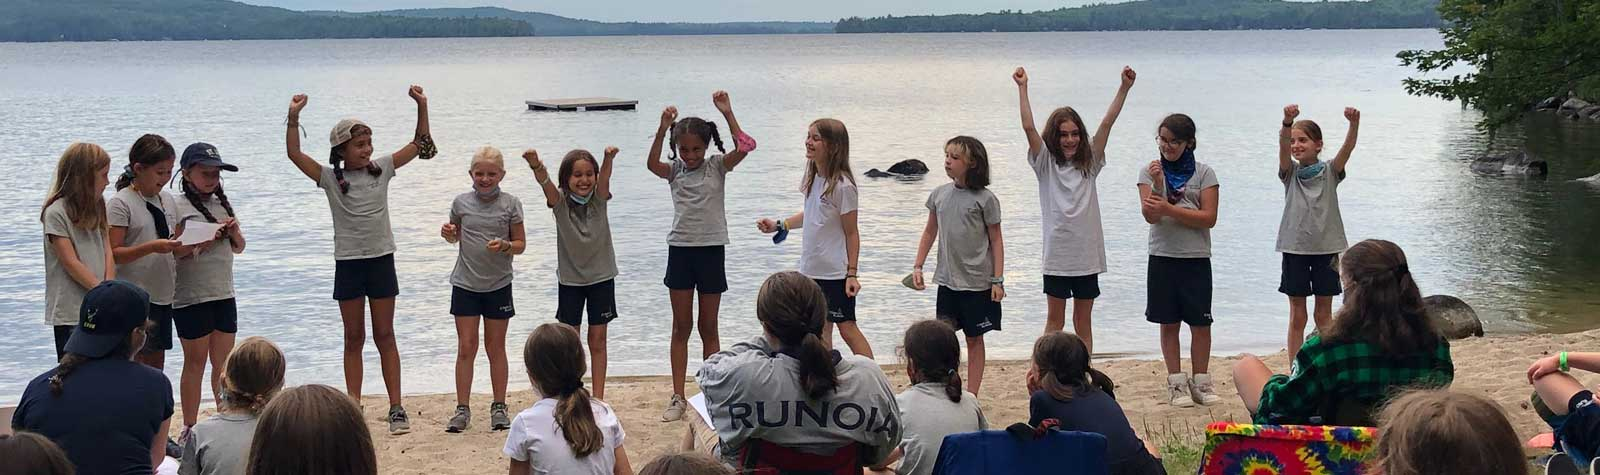 Summer Camp in 2021 with COVID-19 Precautions